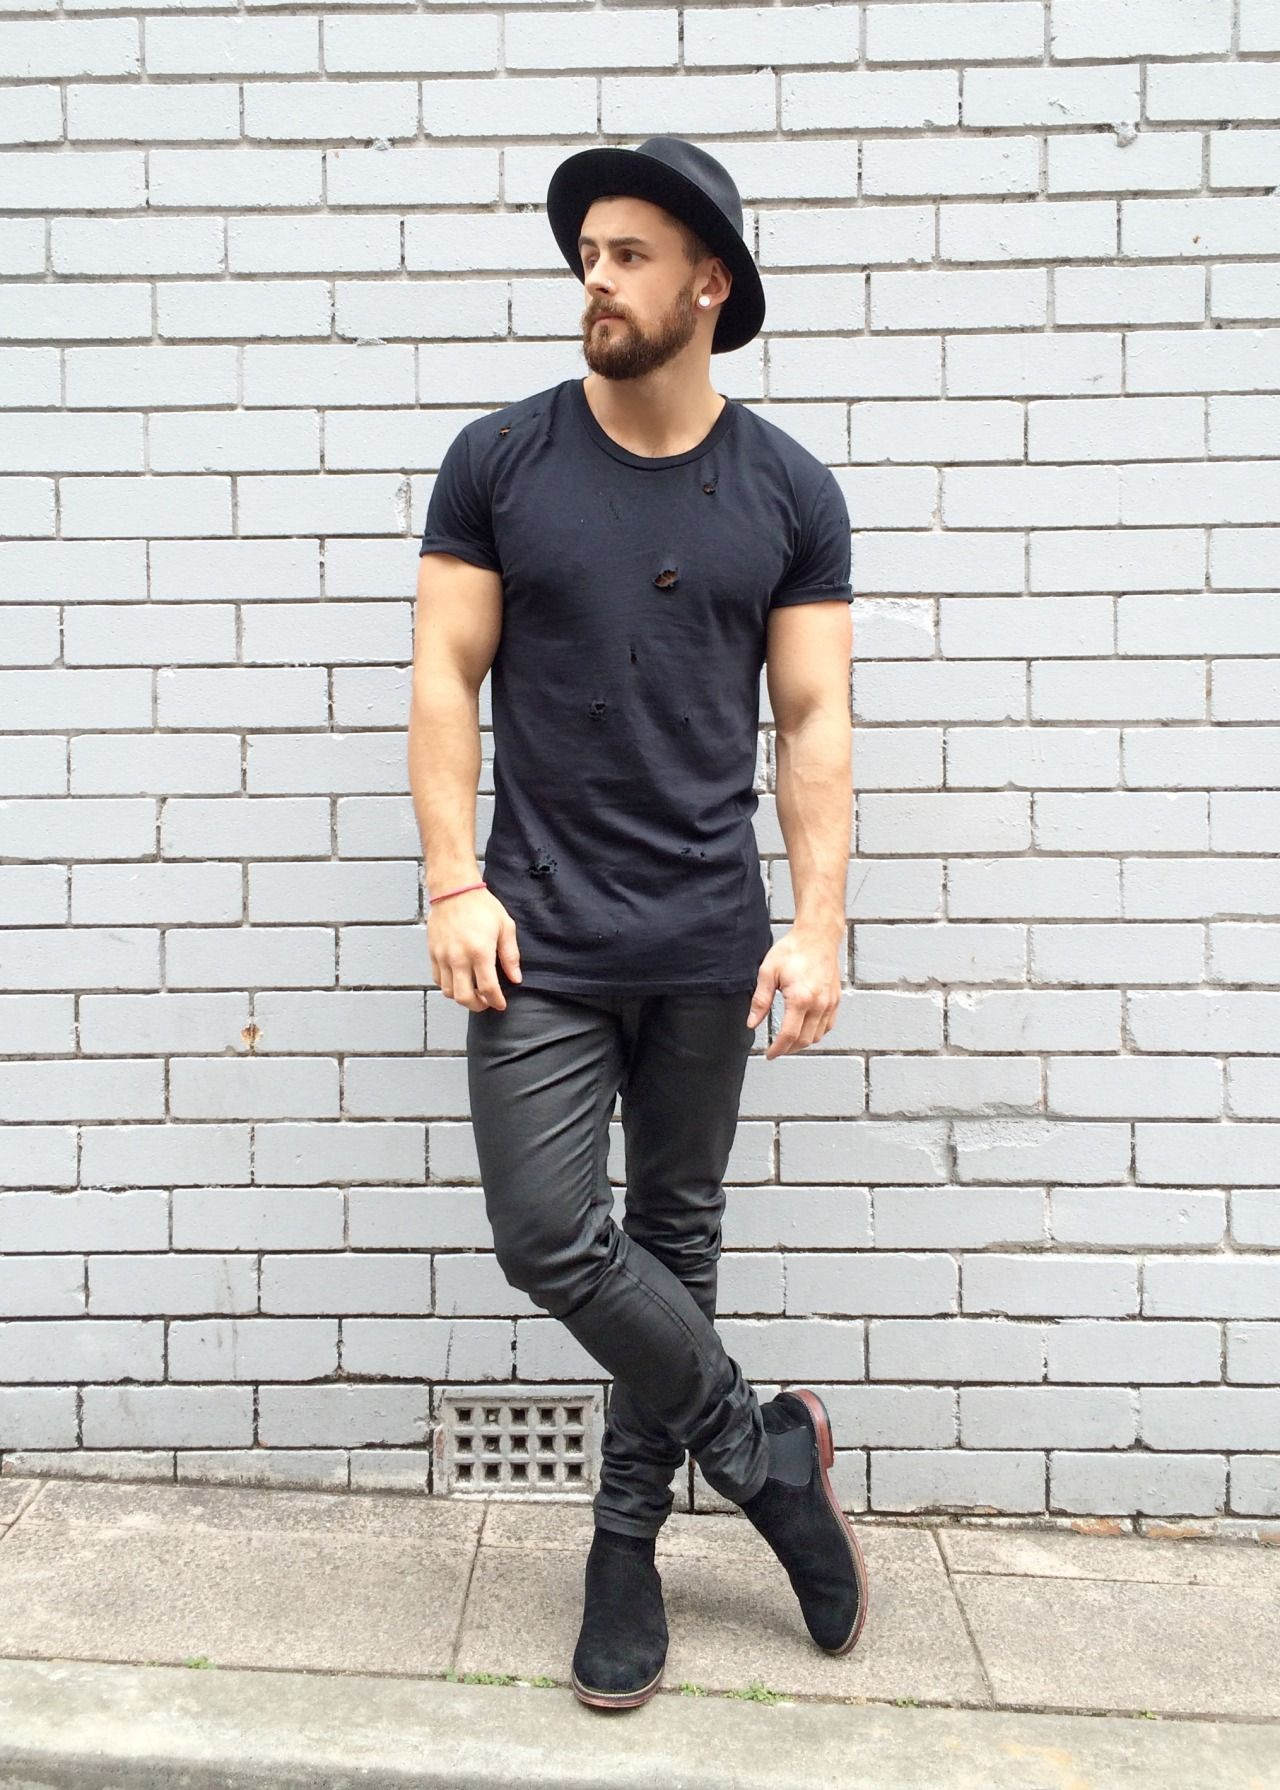 blackout shop: boots jeans hat | Men's Fashion | Fashion ...